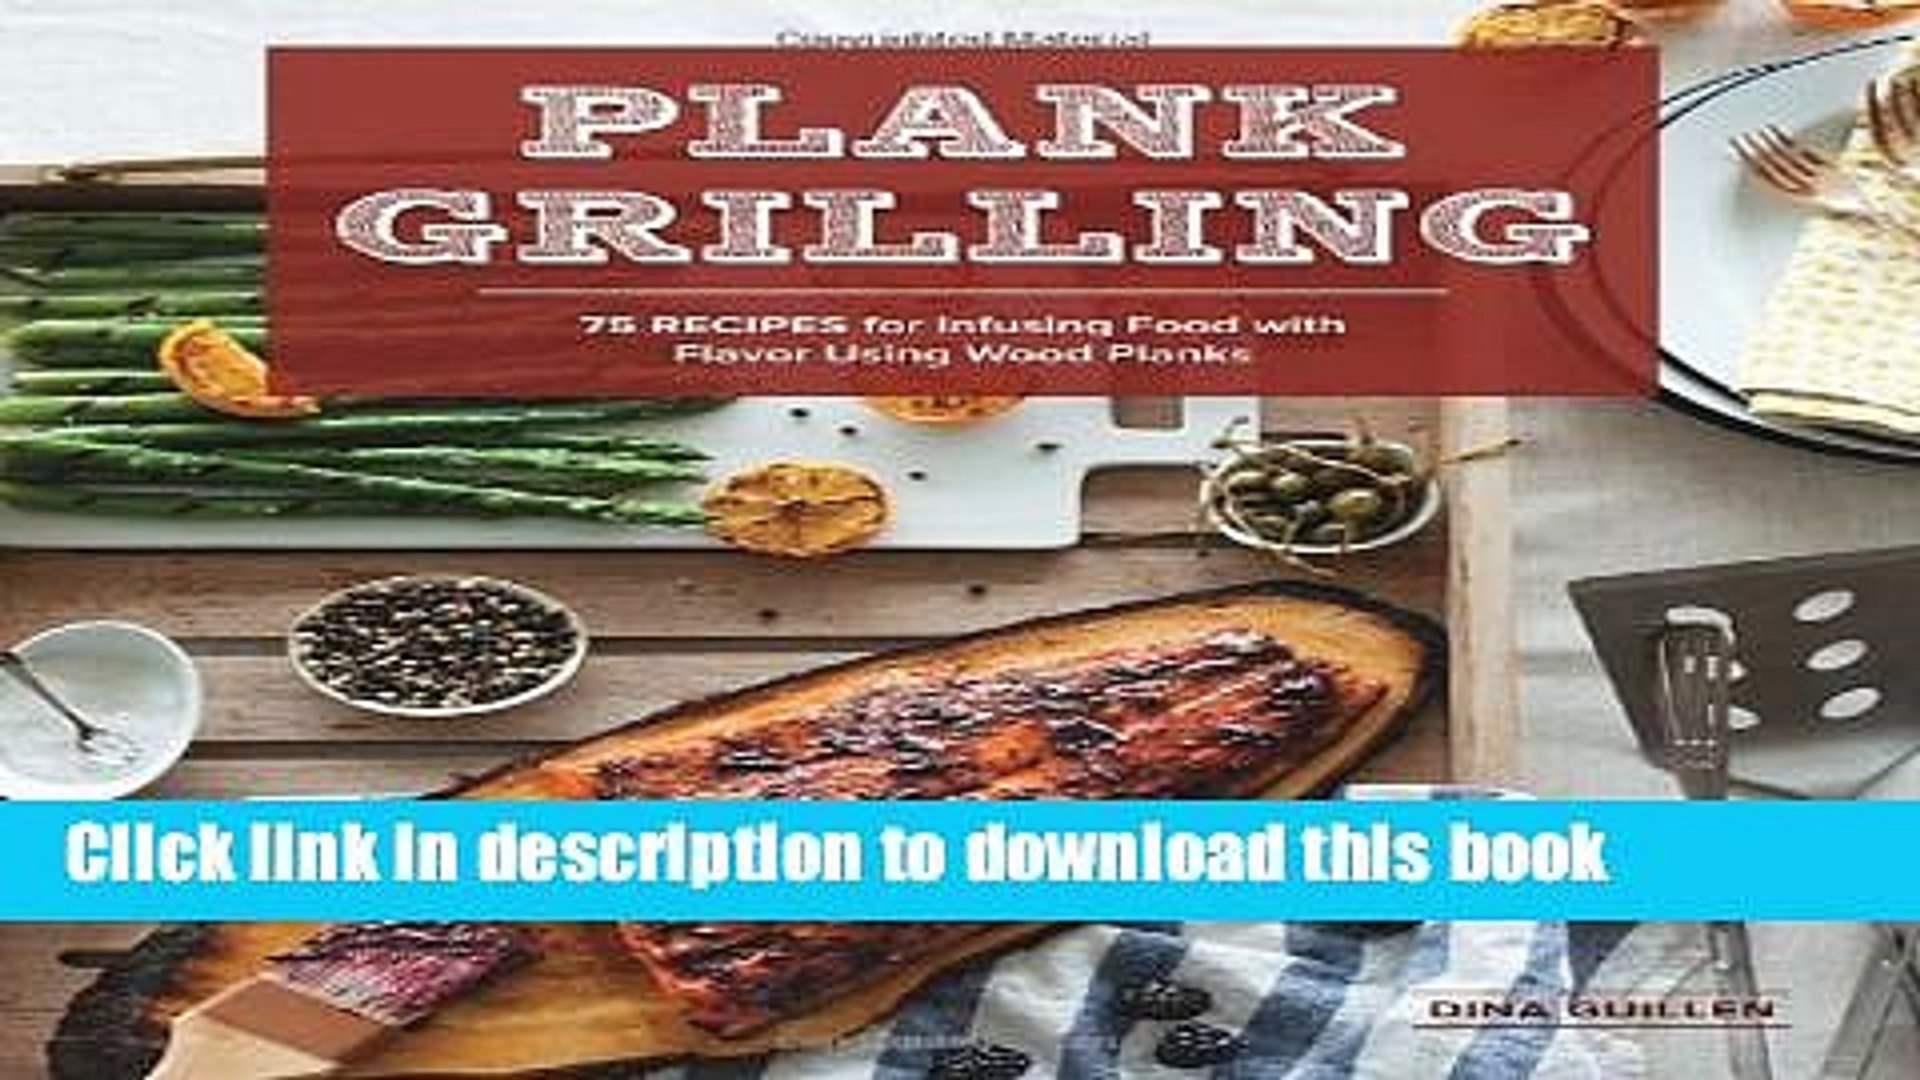 Read Plank Grilling: 75 Recipes for Infusing Food with Flavor Using Wood Planks  Ebook Free